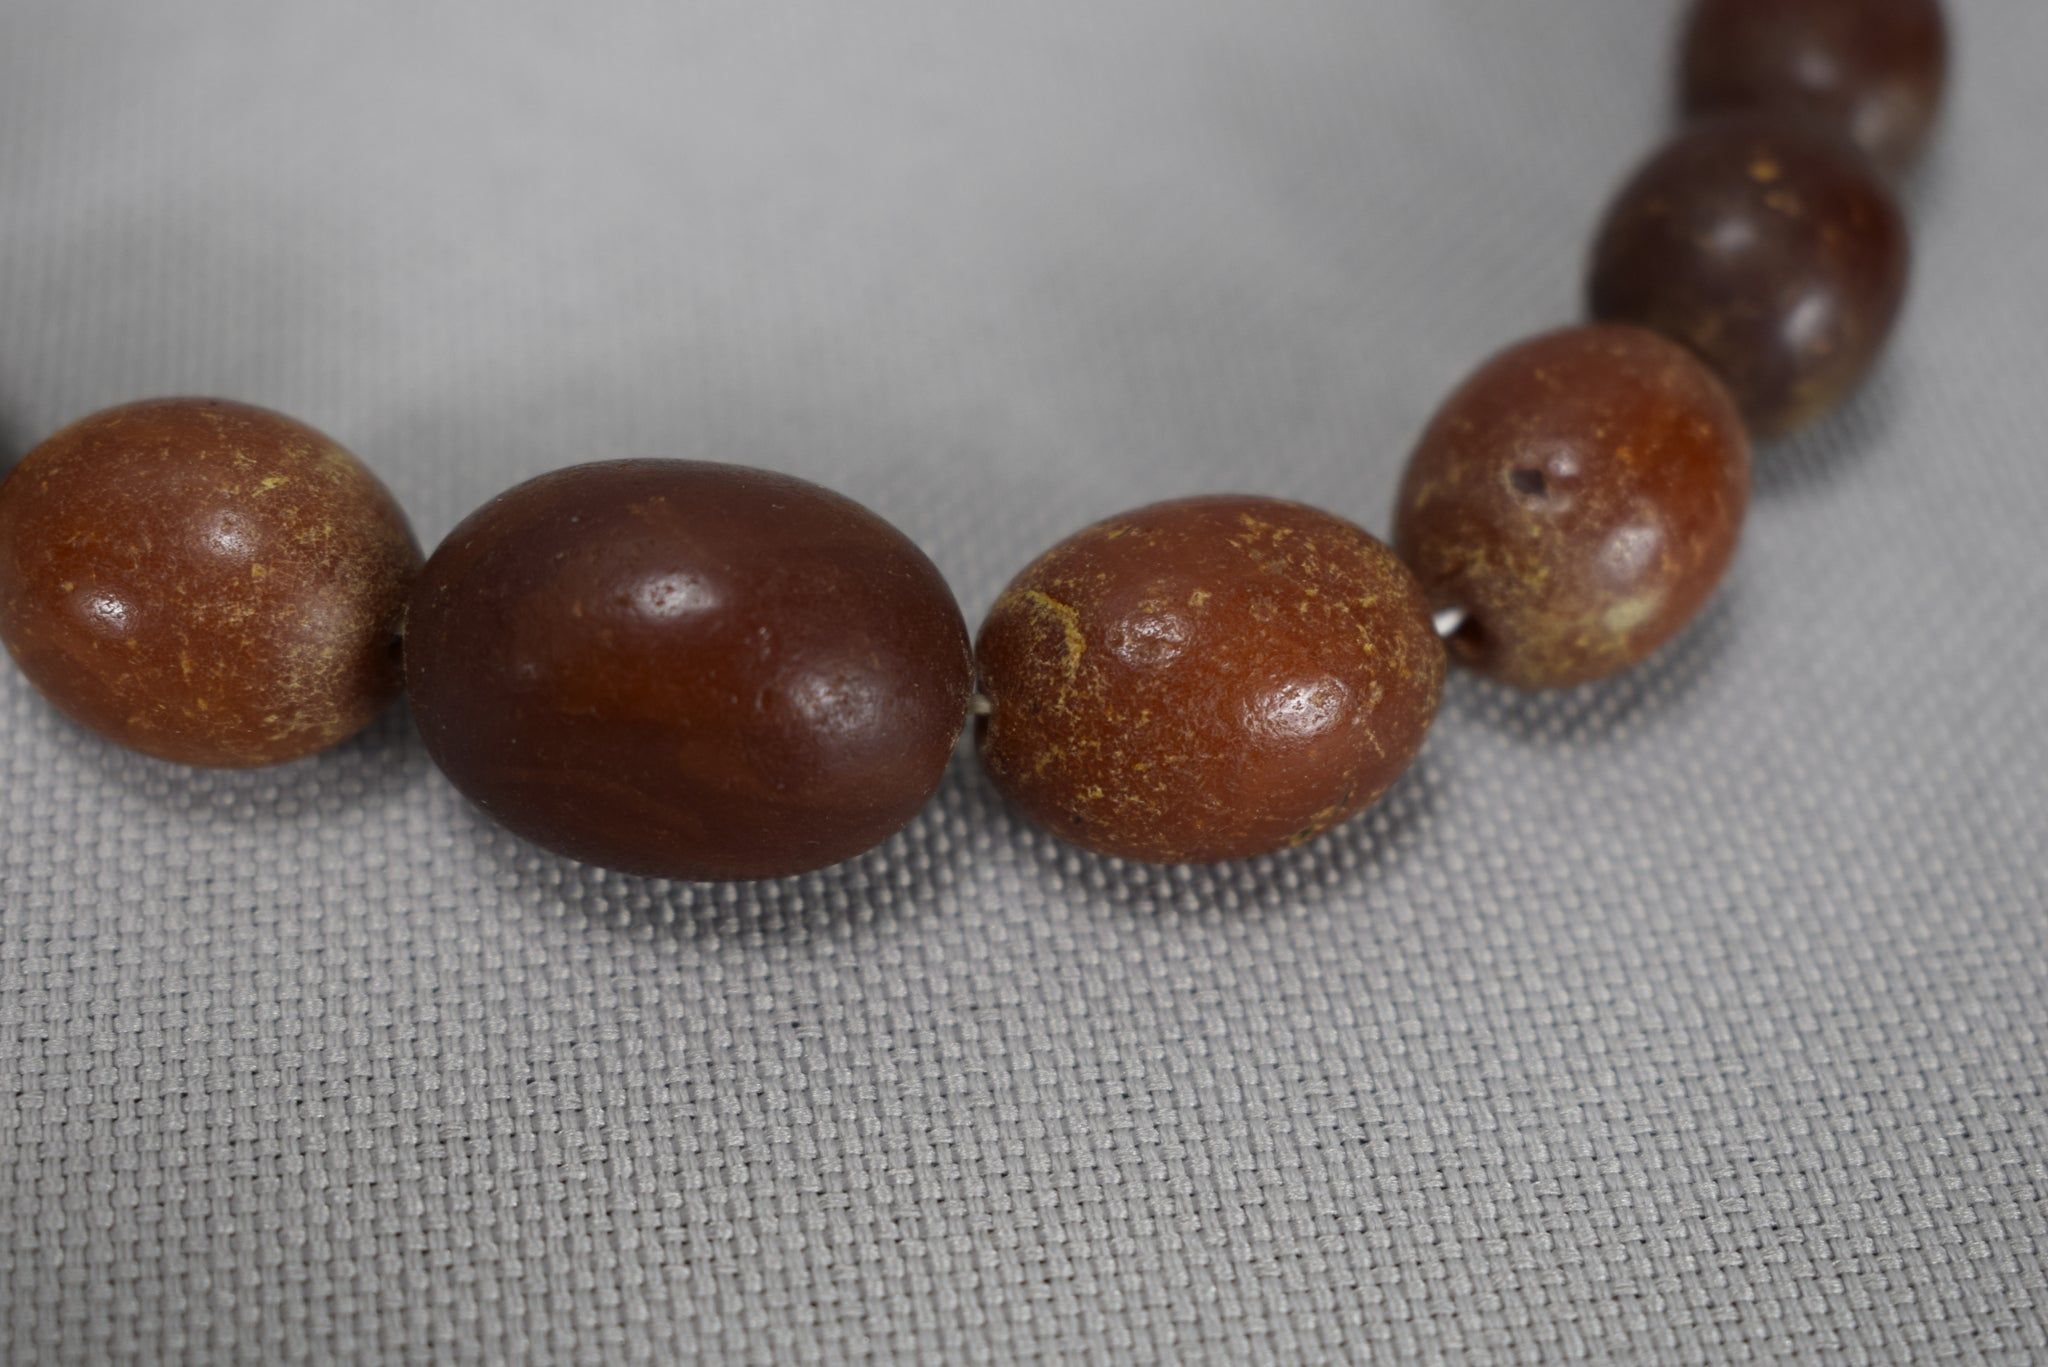 Red Cherry Amber Necklace 54g - Charmantiques